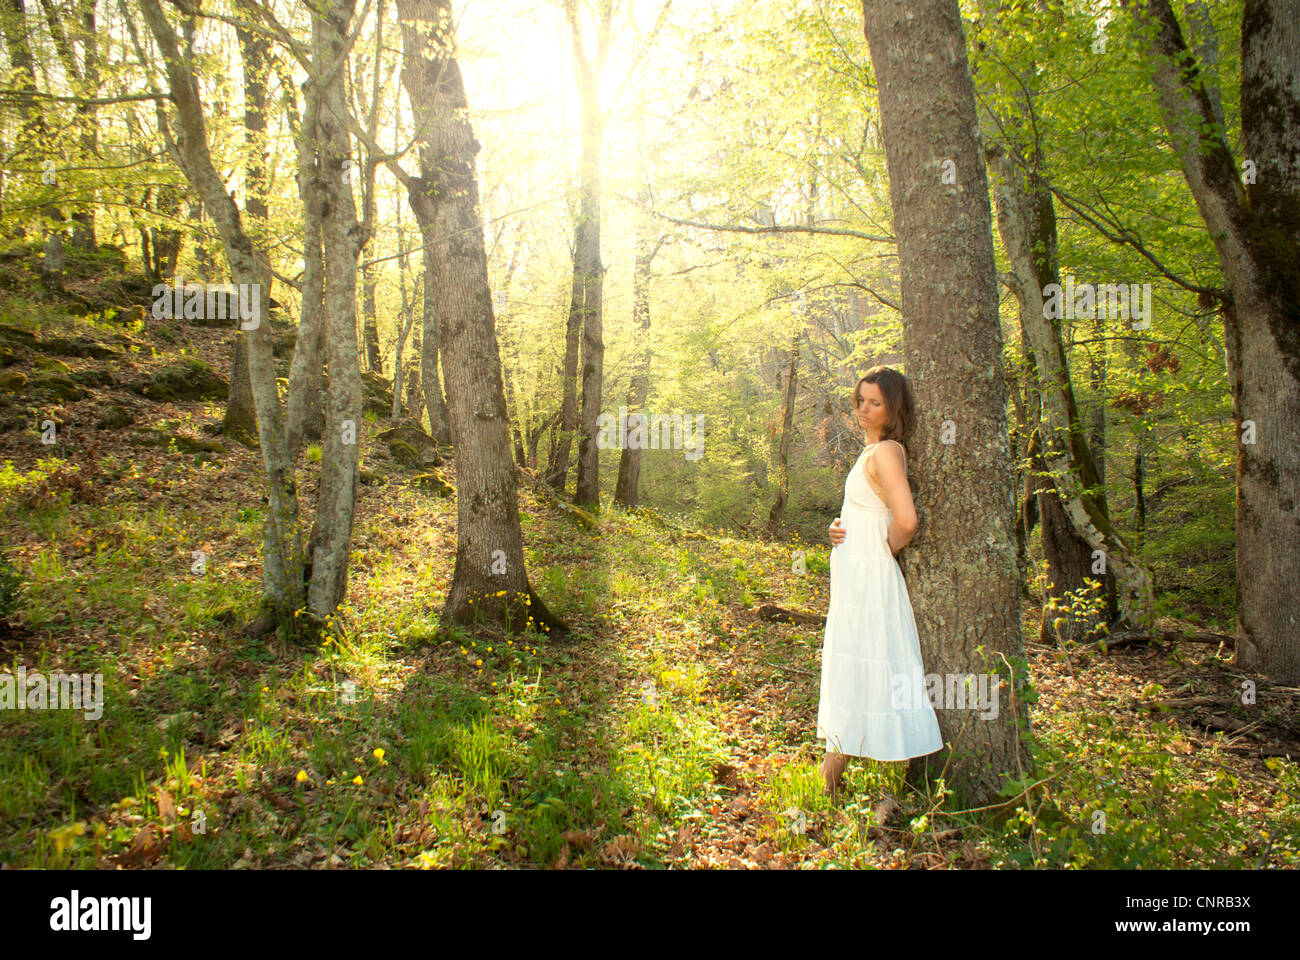 Young woman leans on a tree in a fairytale mystical forest - Stock Image